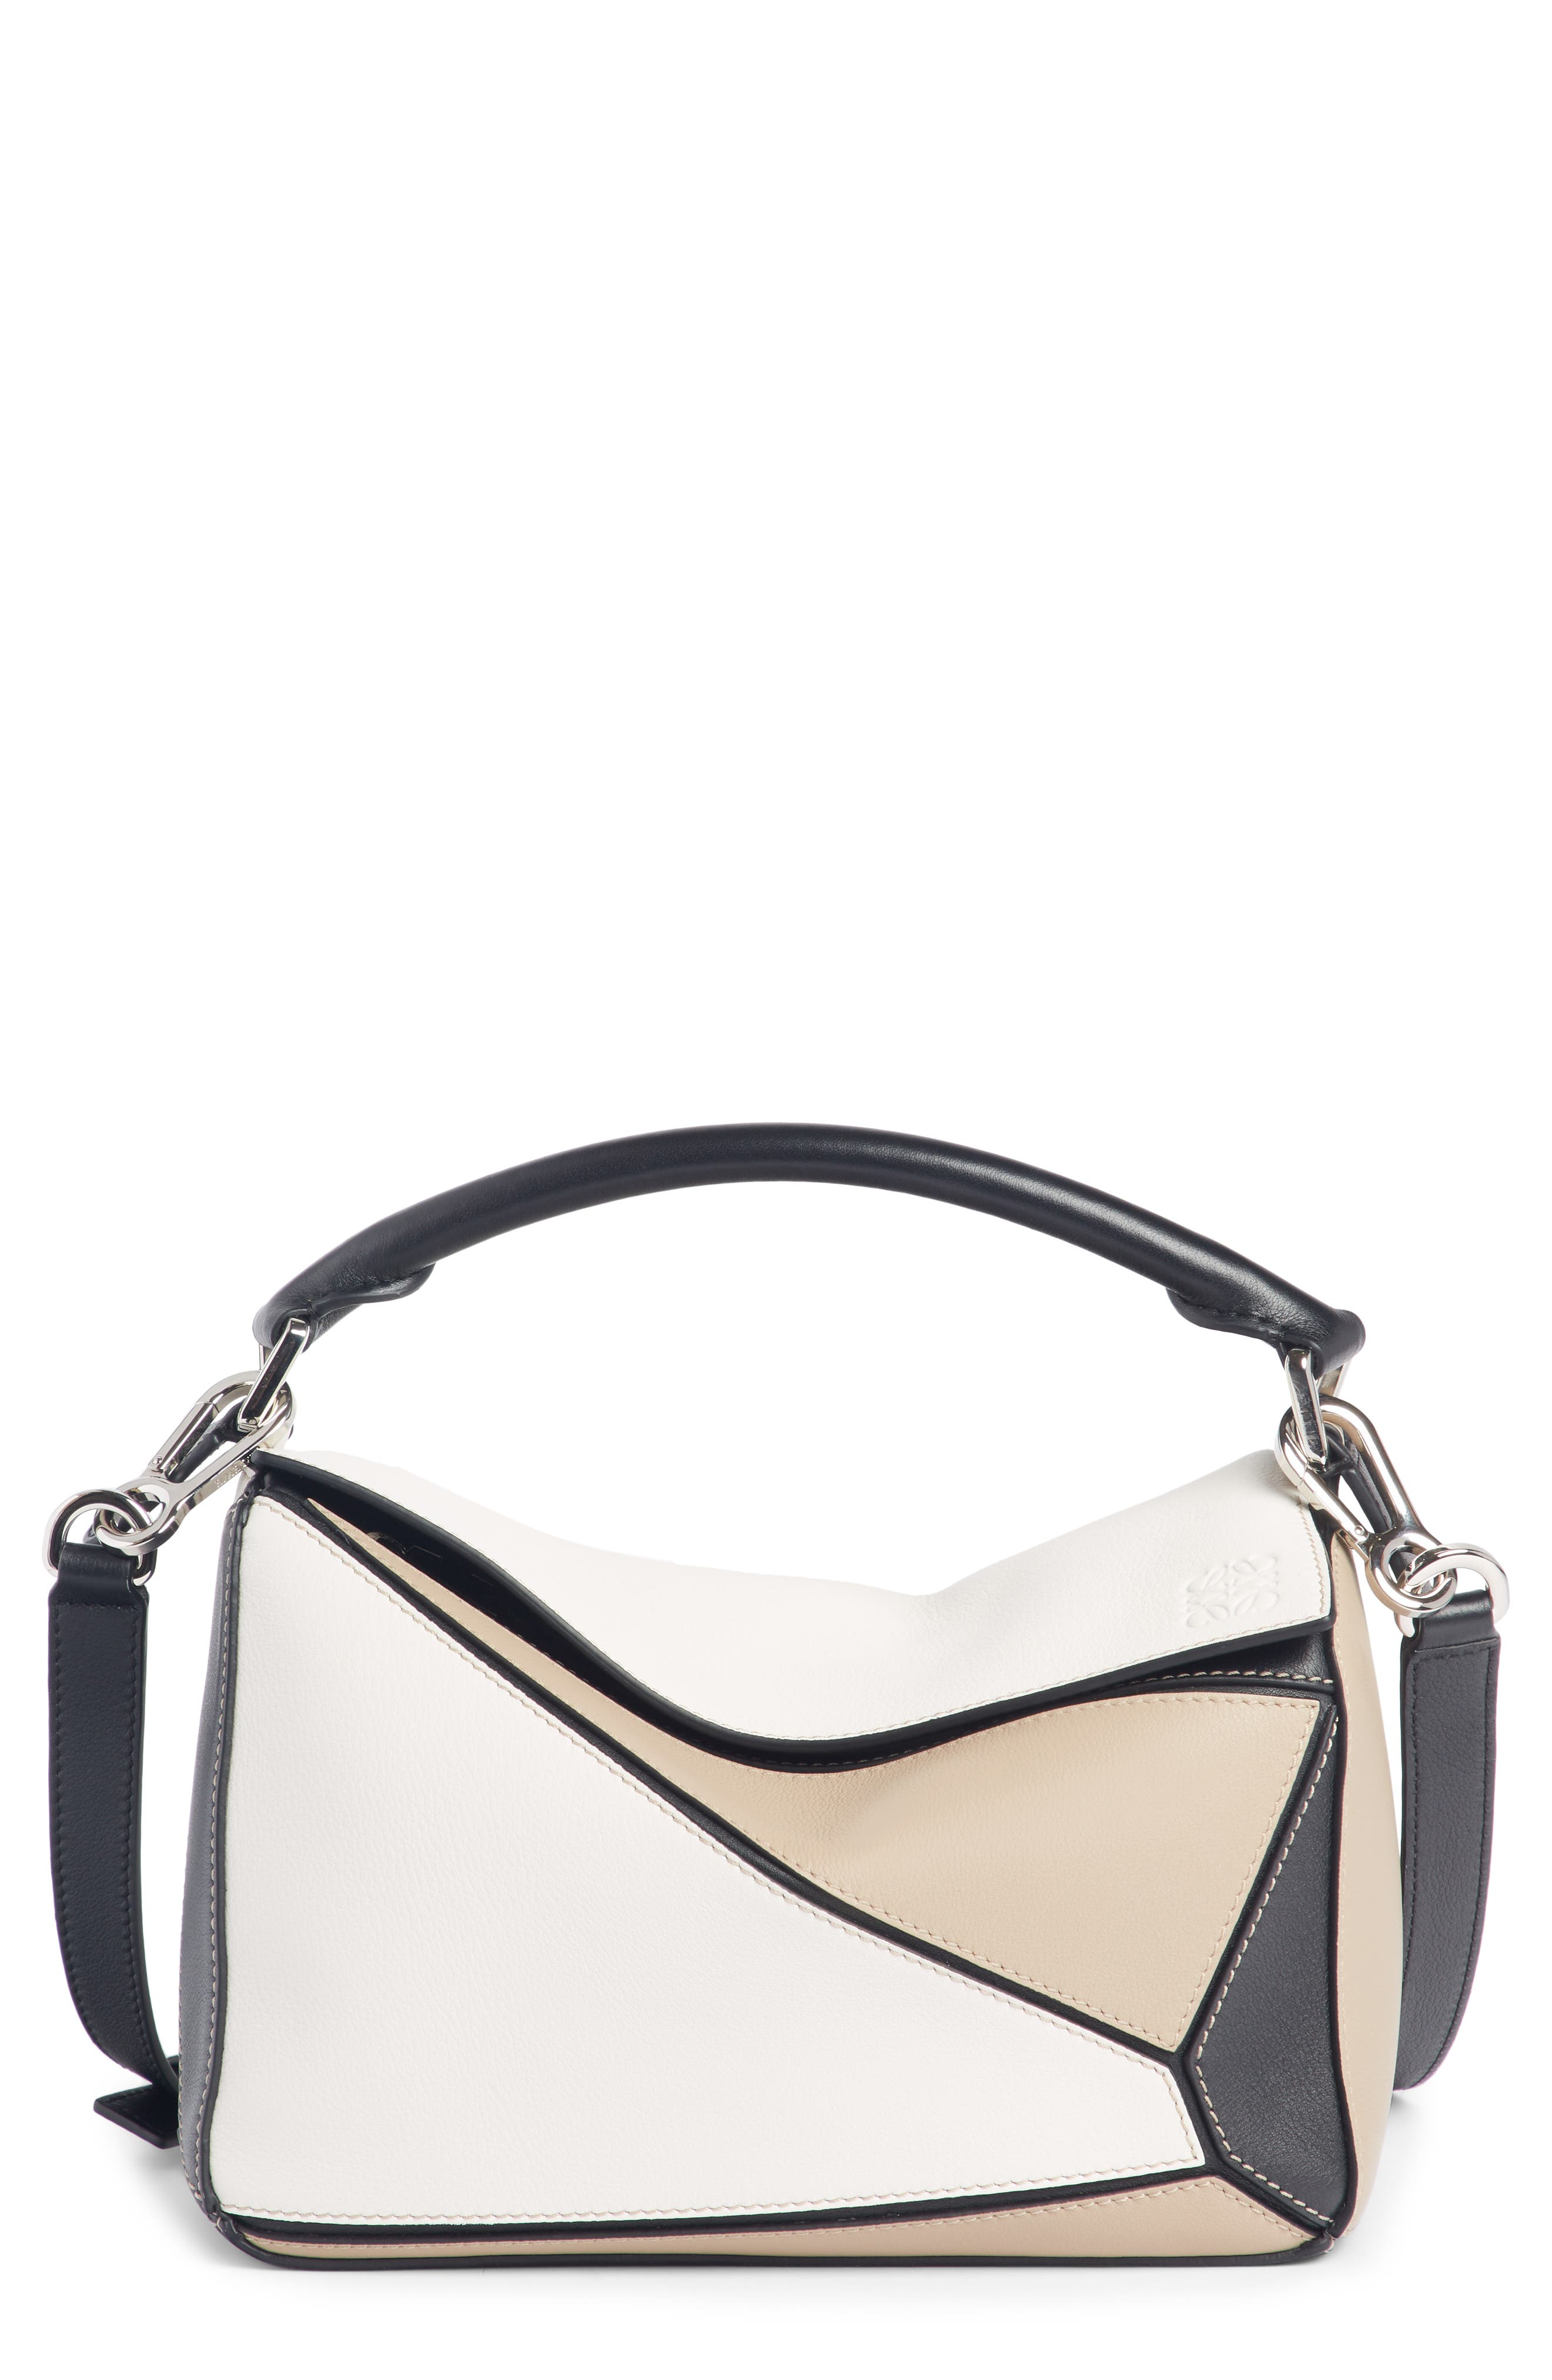 Puzzle Calfskin Leather Bag,                         Main,                         color, Soft White/ Sand